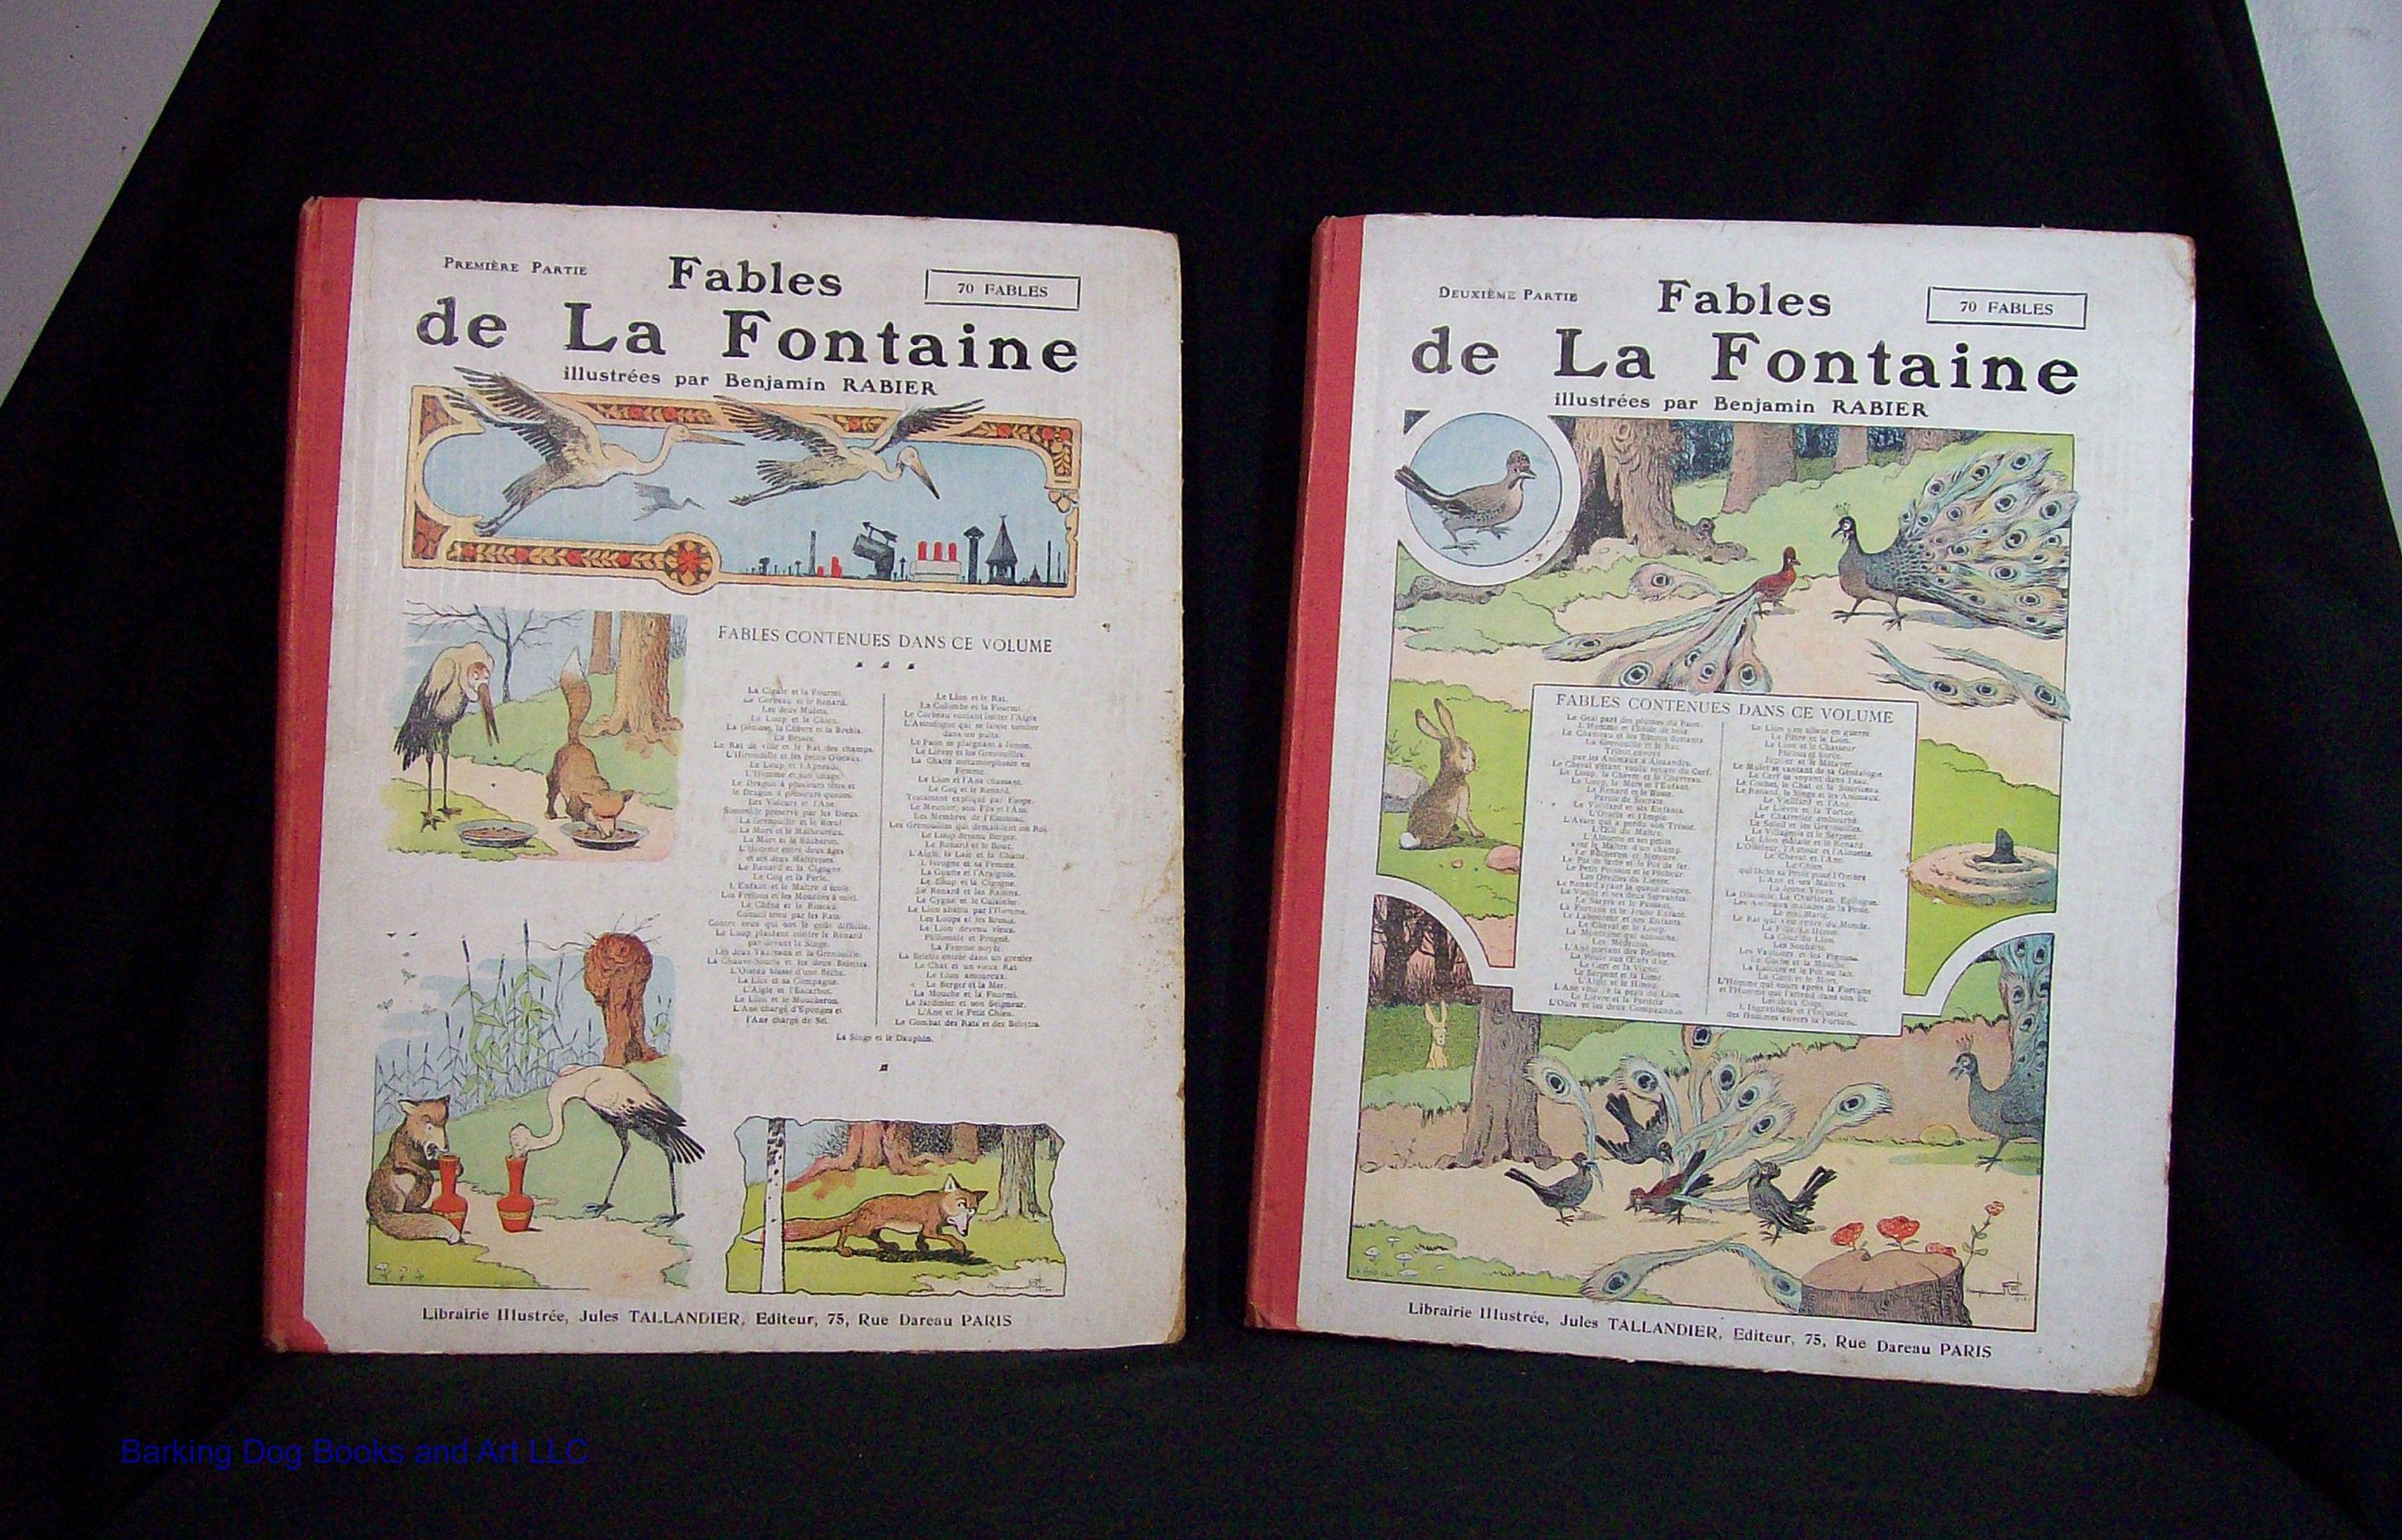 Fables De La Fontaine Two Volumes In French Illustrated By Etsy In 2020 Fables Illustration Book Art